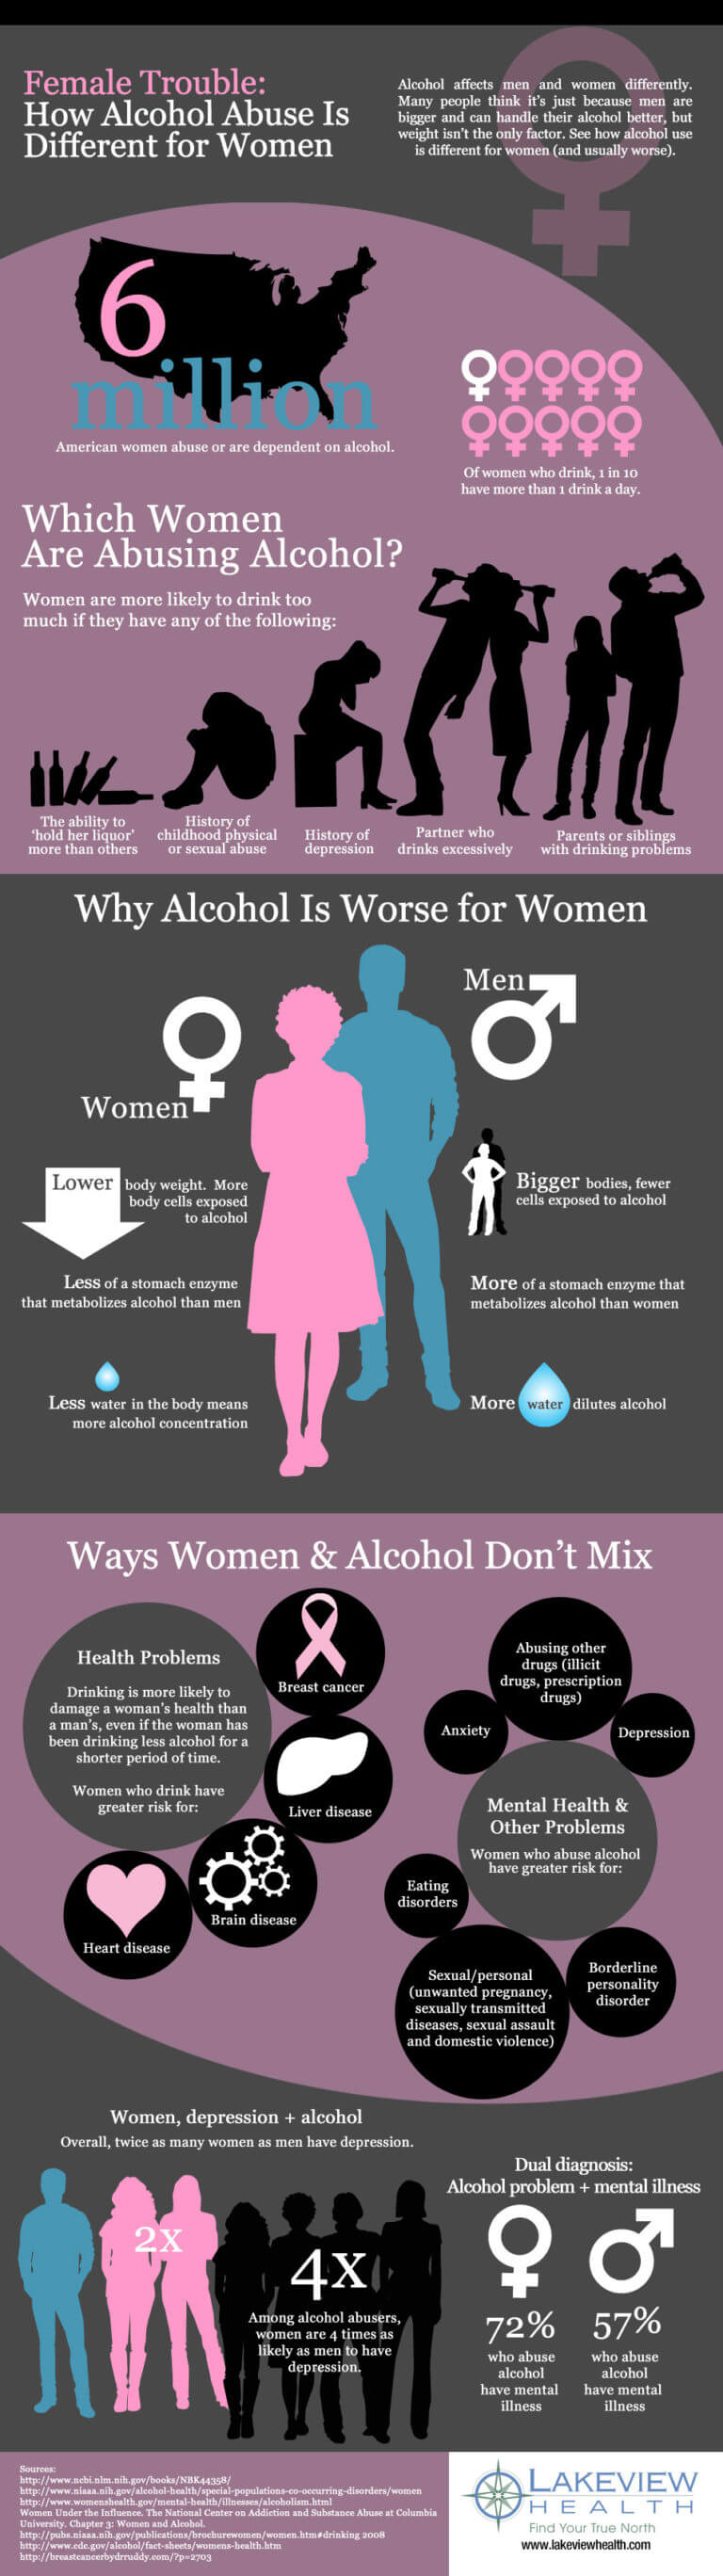 Ways alcohol is worse for women